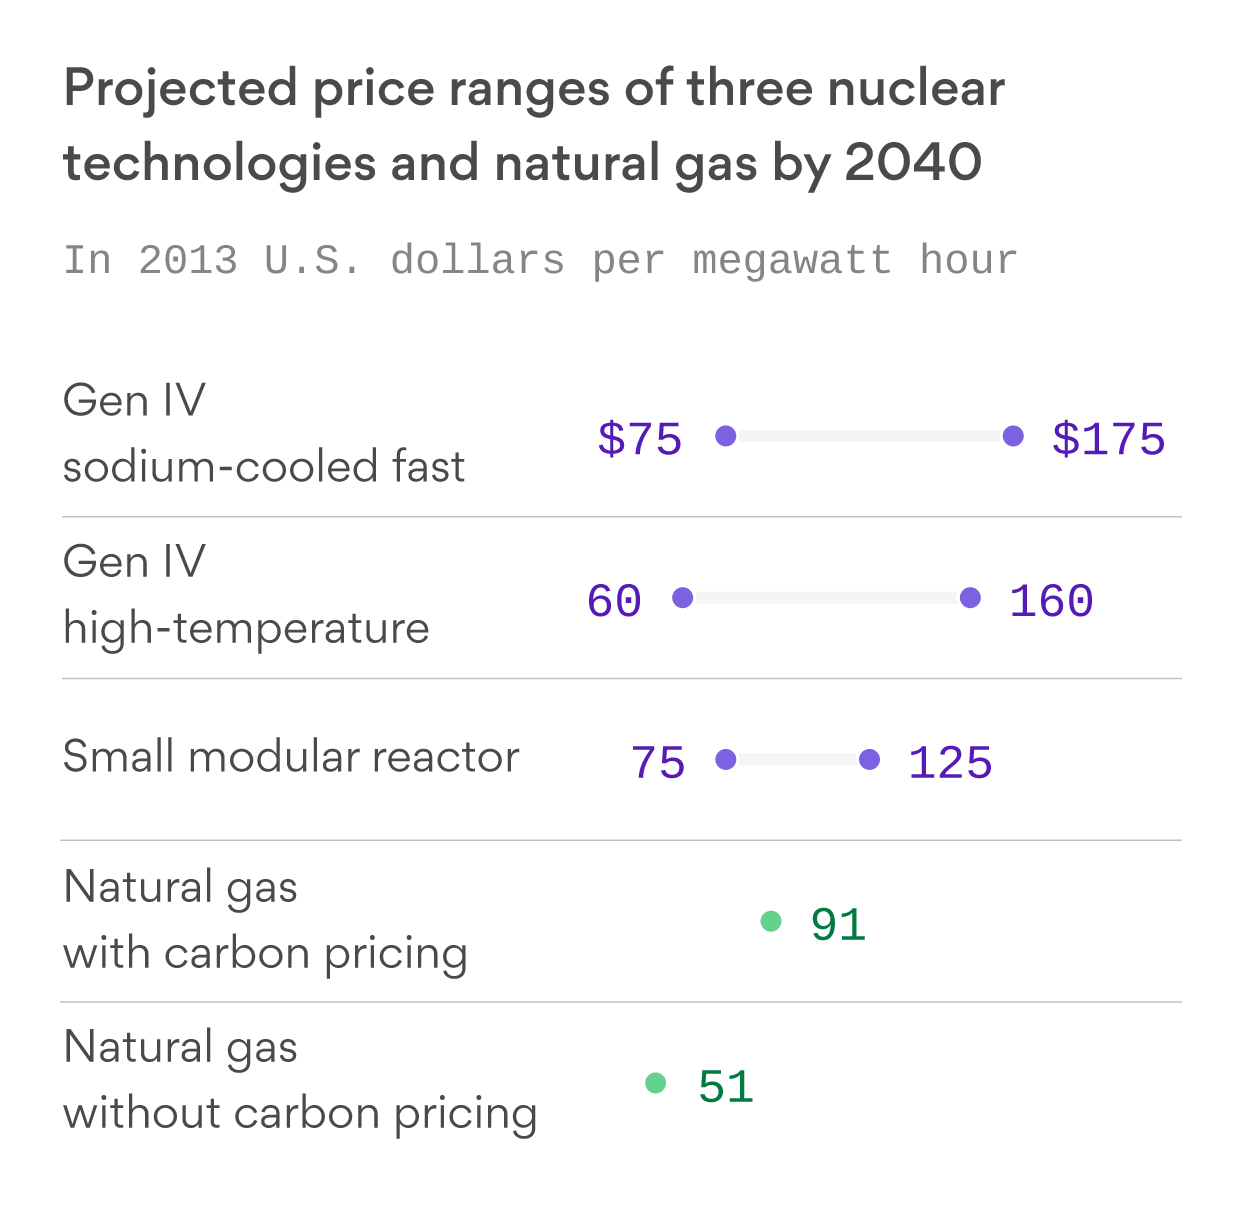 Nuclear energy could be competitive, but it requires pricing carbon